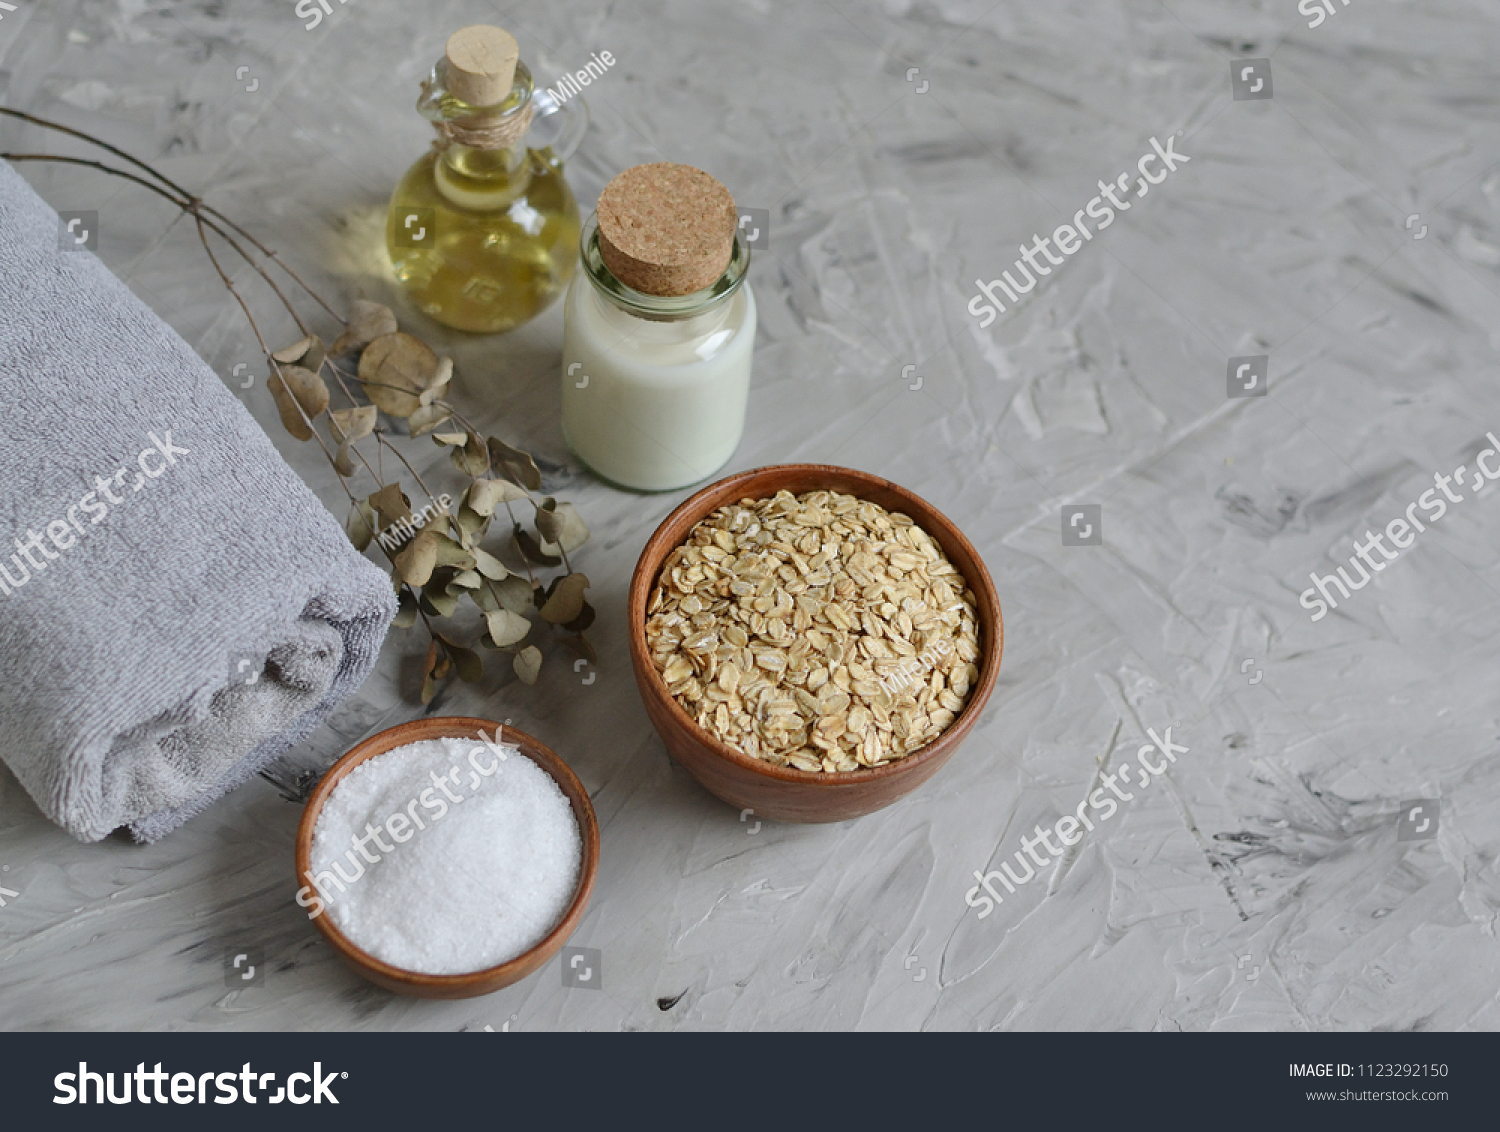 Natural Ingredients for Homemade Oatmeal Milk Body Face Scrub Beauty Concept Organic Healthy Lifestyle